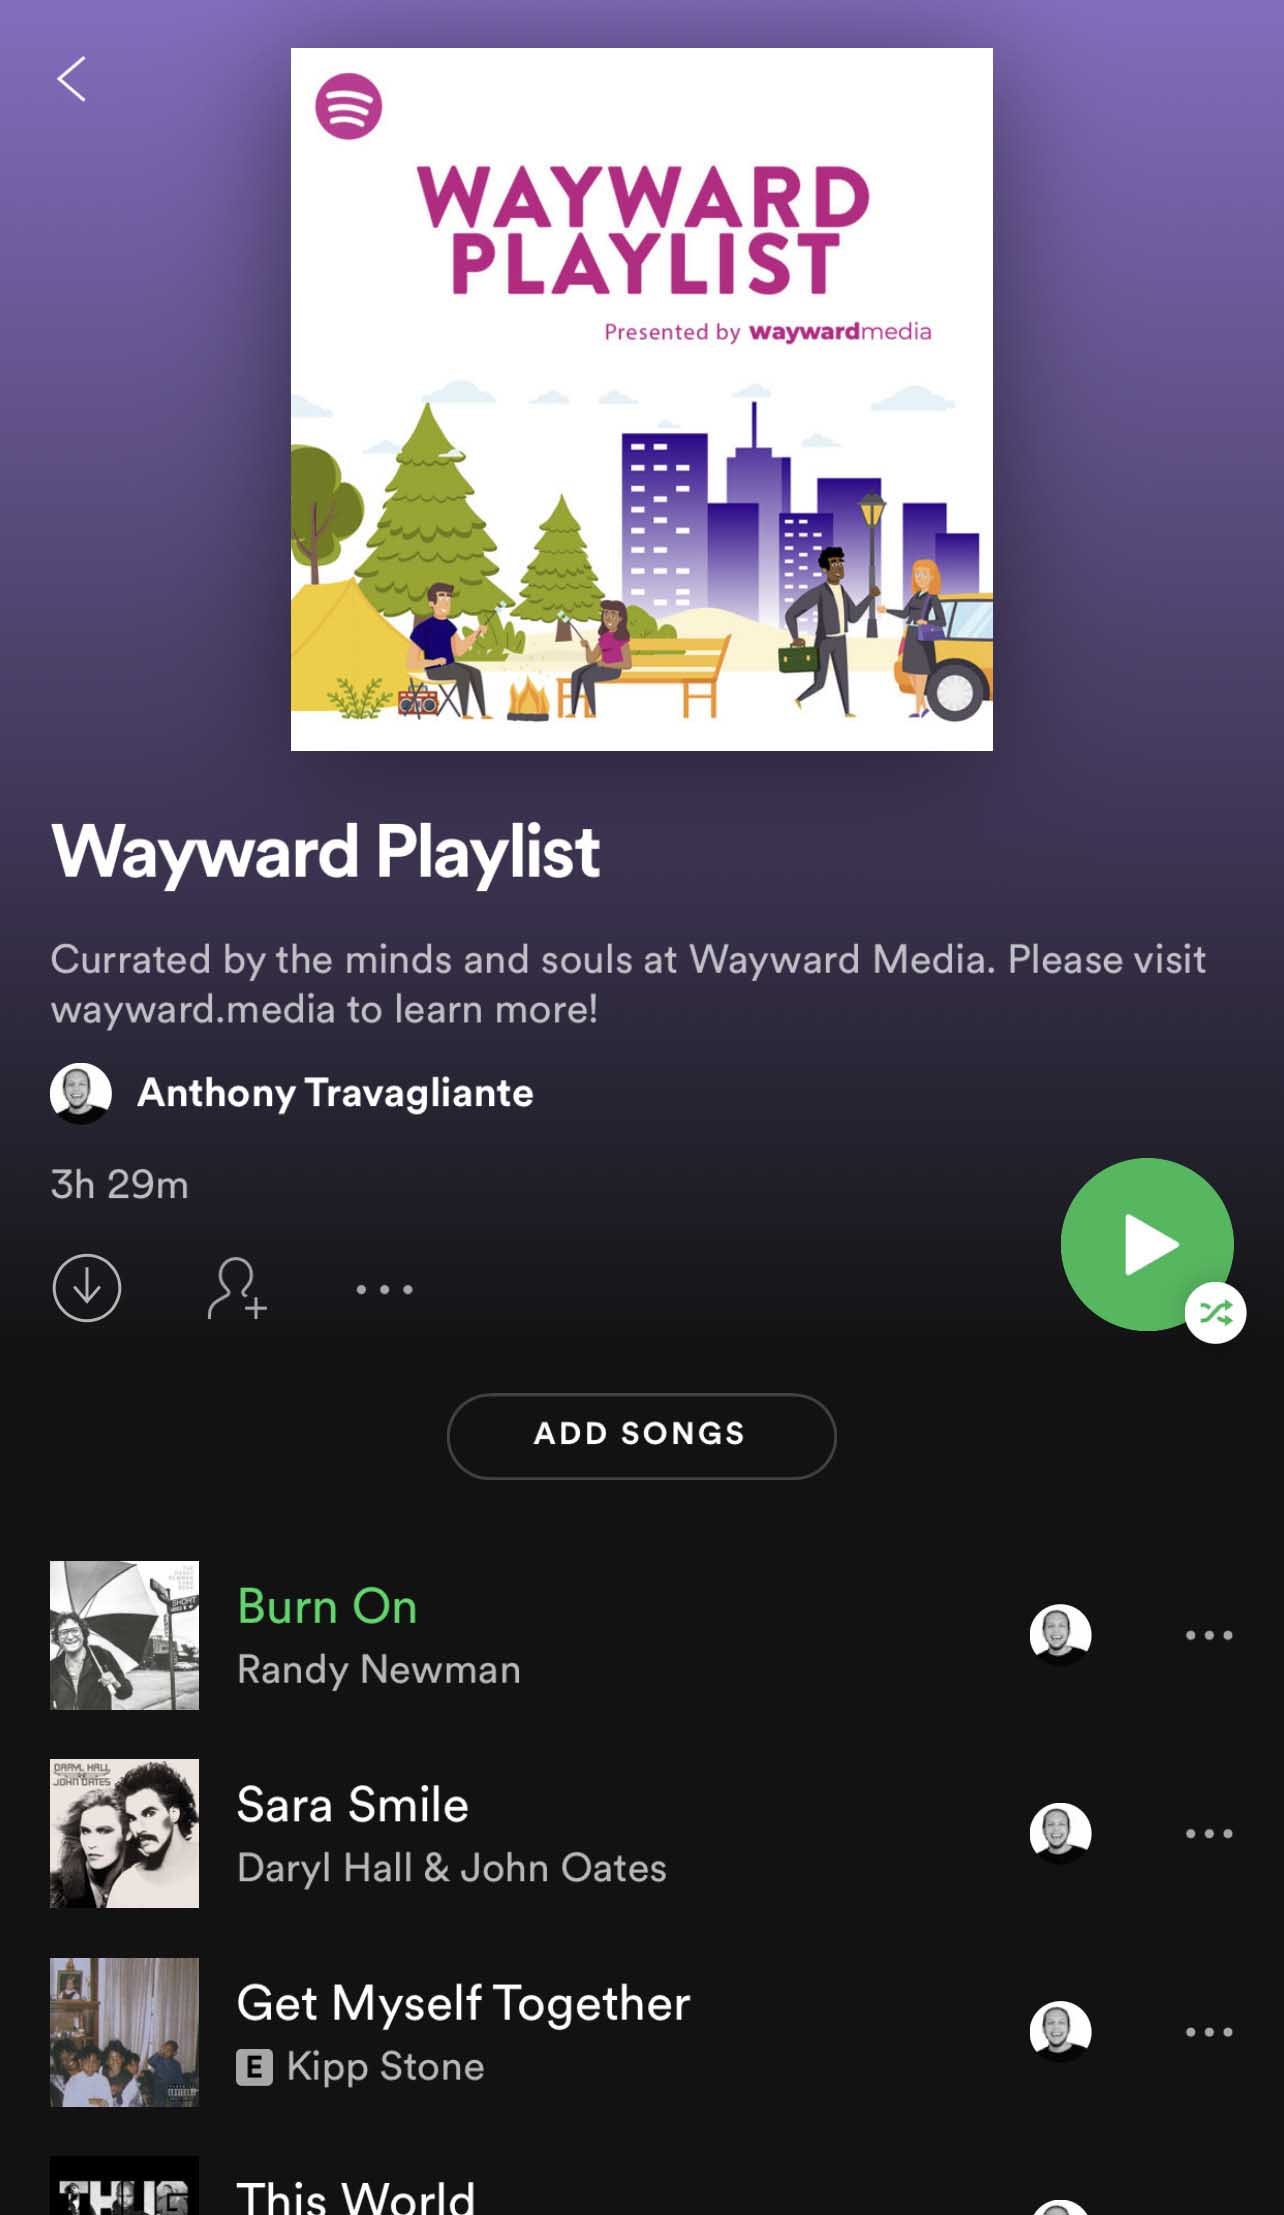 A playlist of enjoyable music on Spotify curated by Wayward